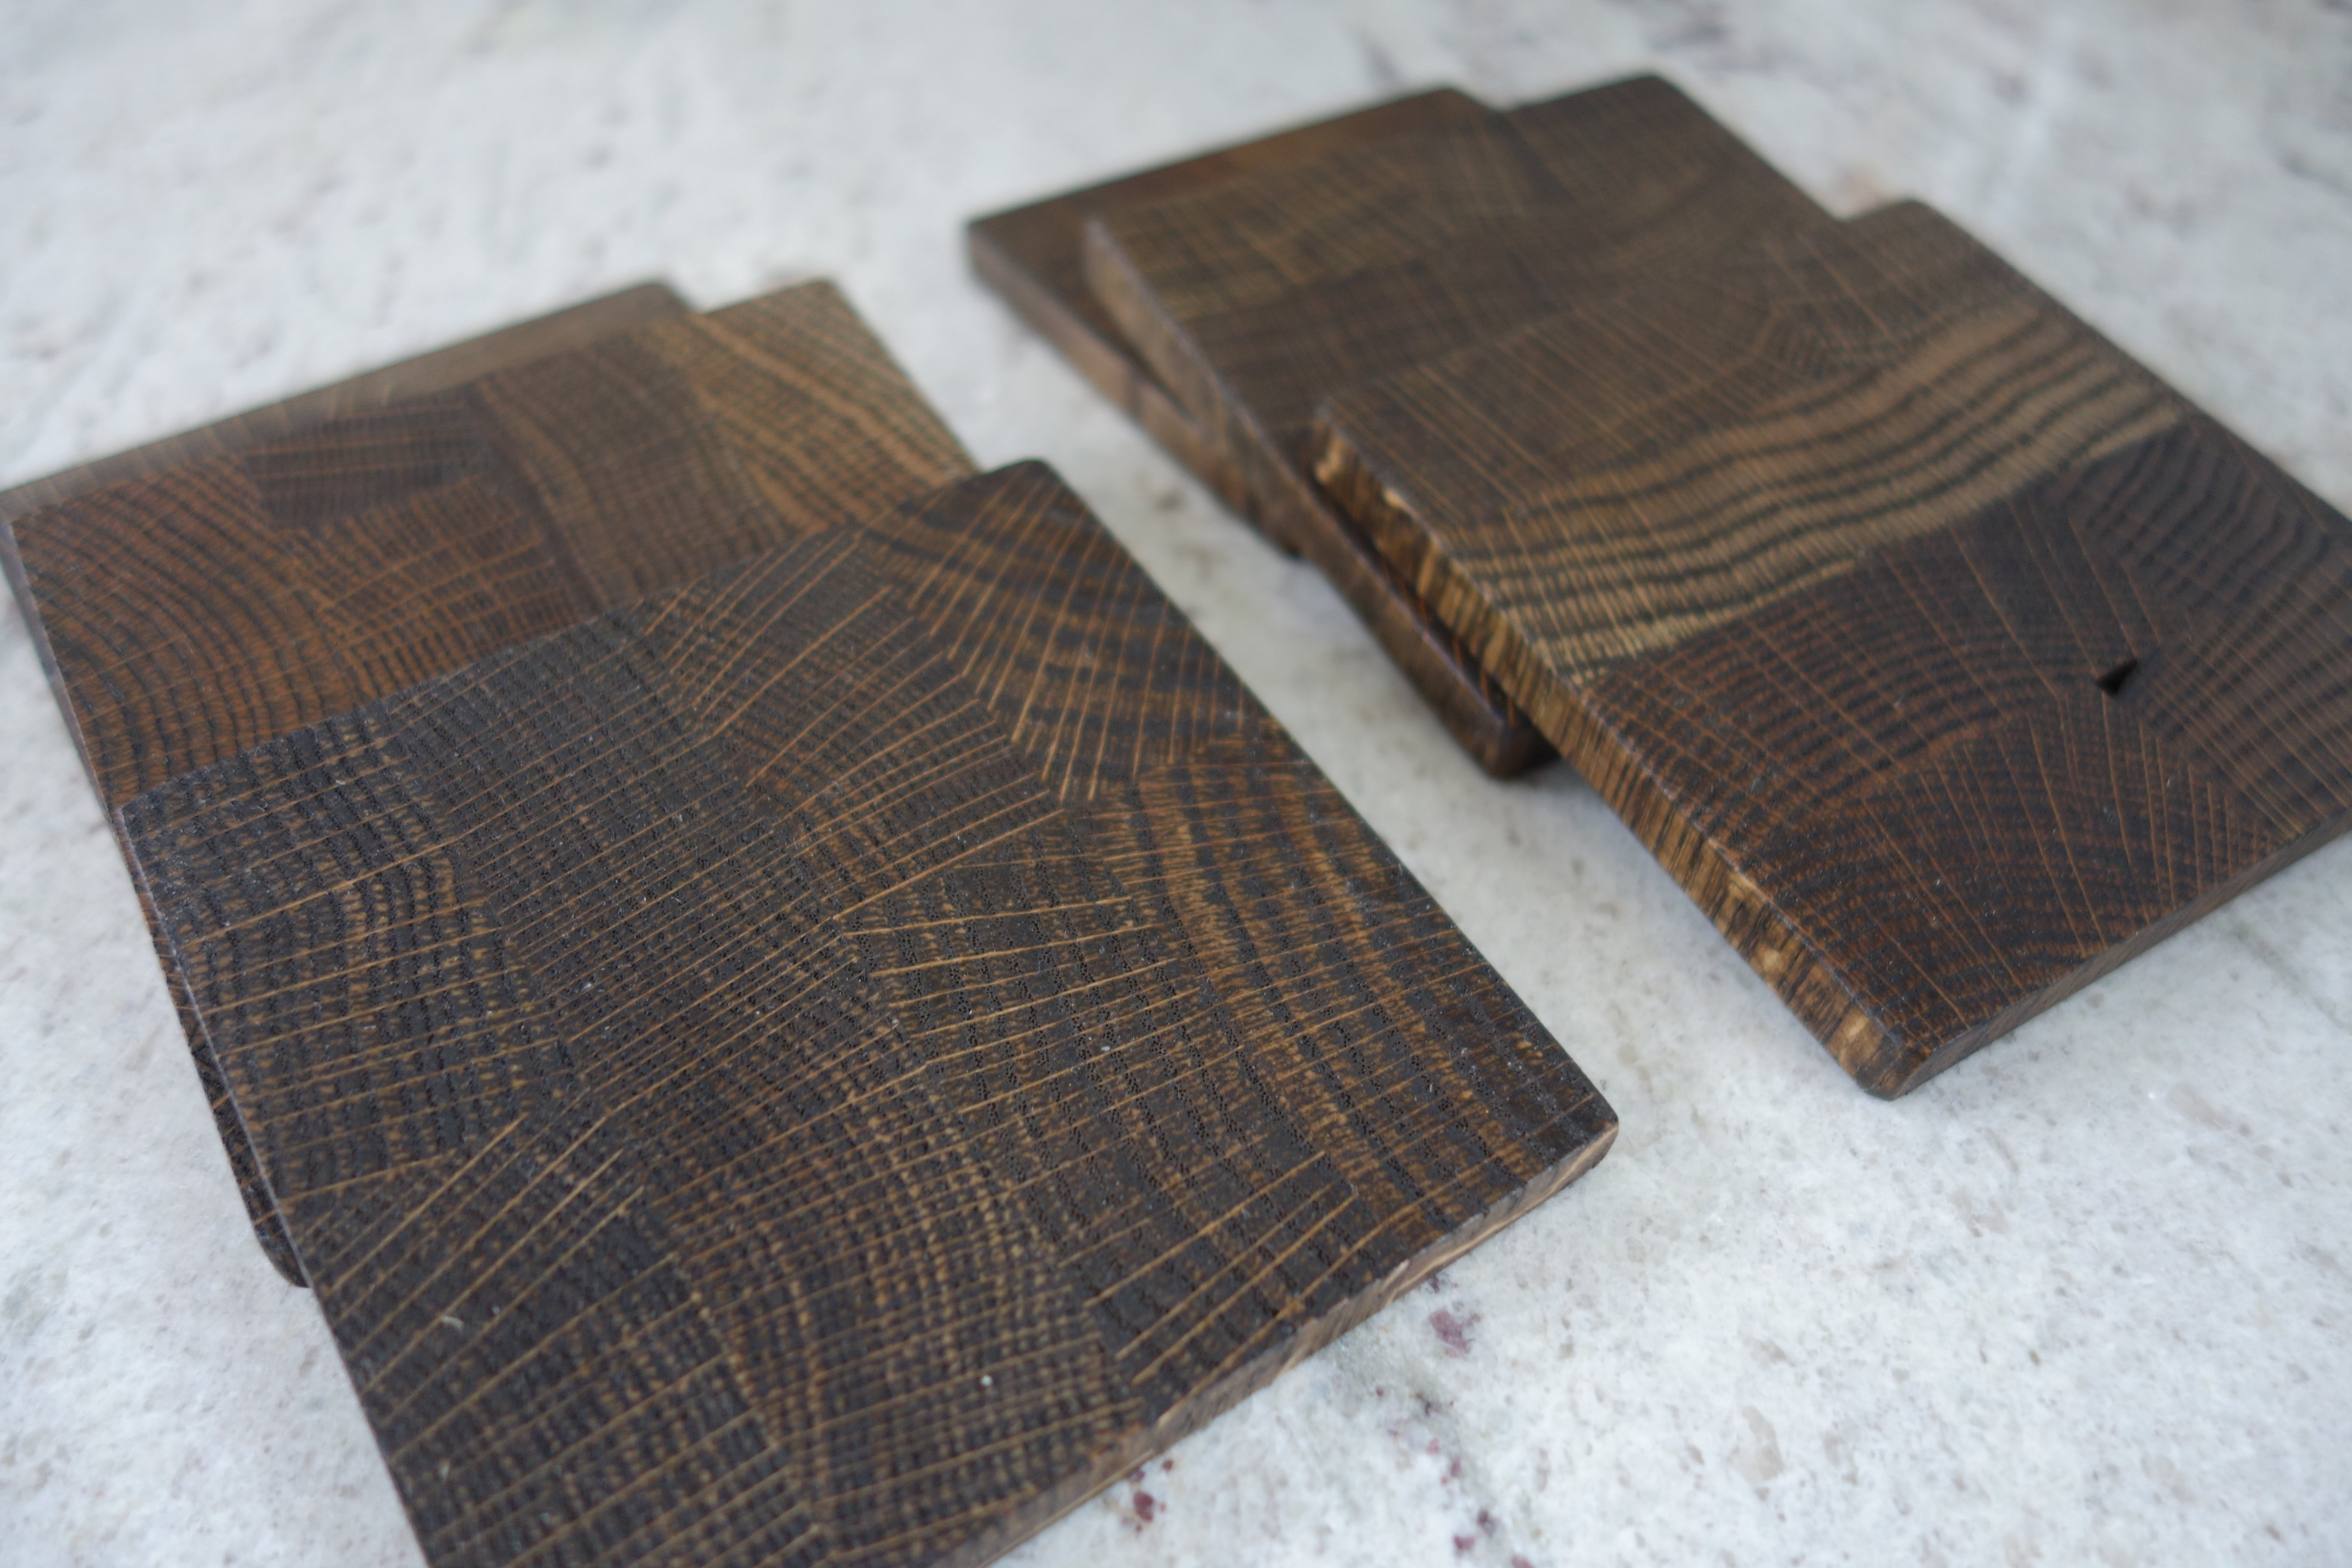 Handmade End Grain Wood Coasters, drink coasters, wood trivet, wood tray, candle holder